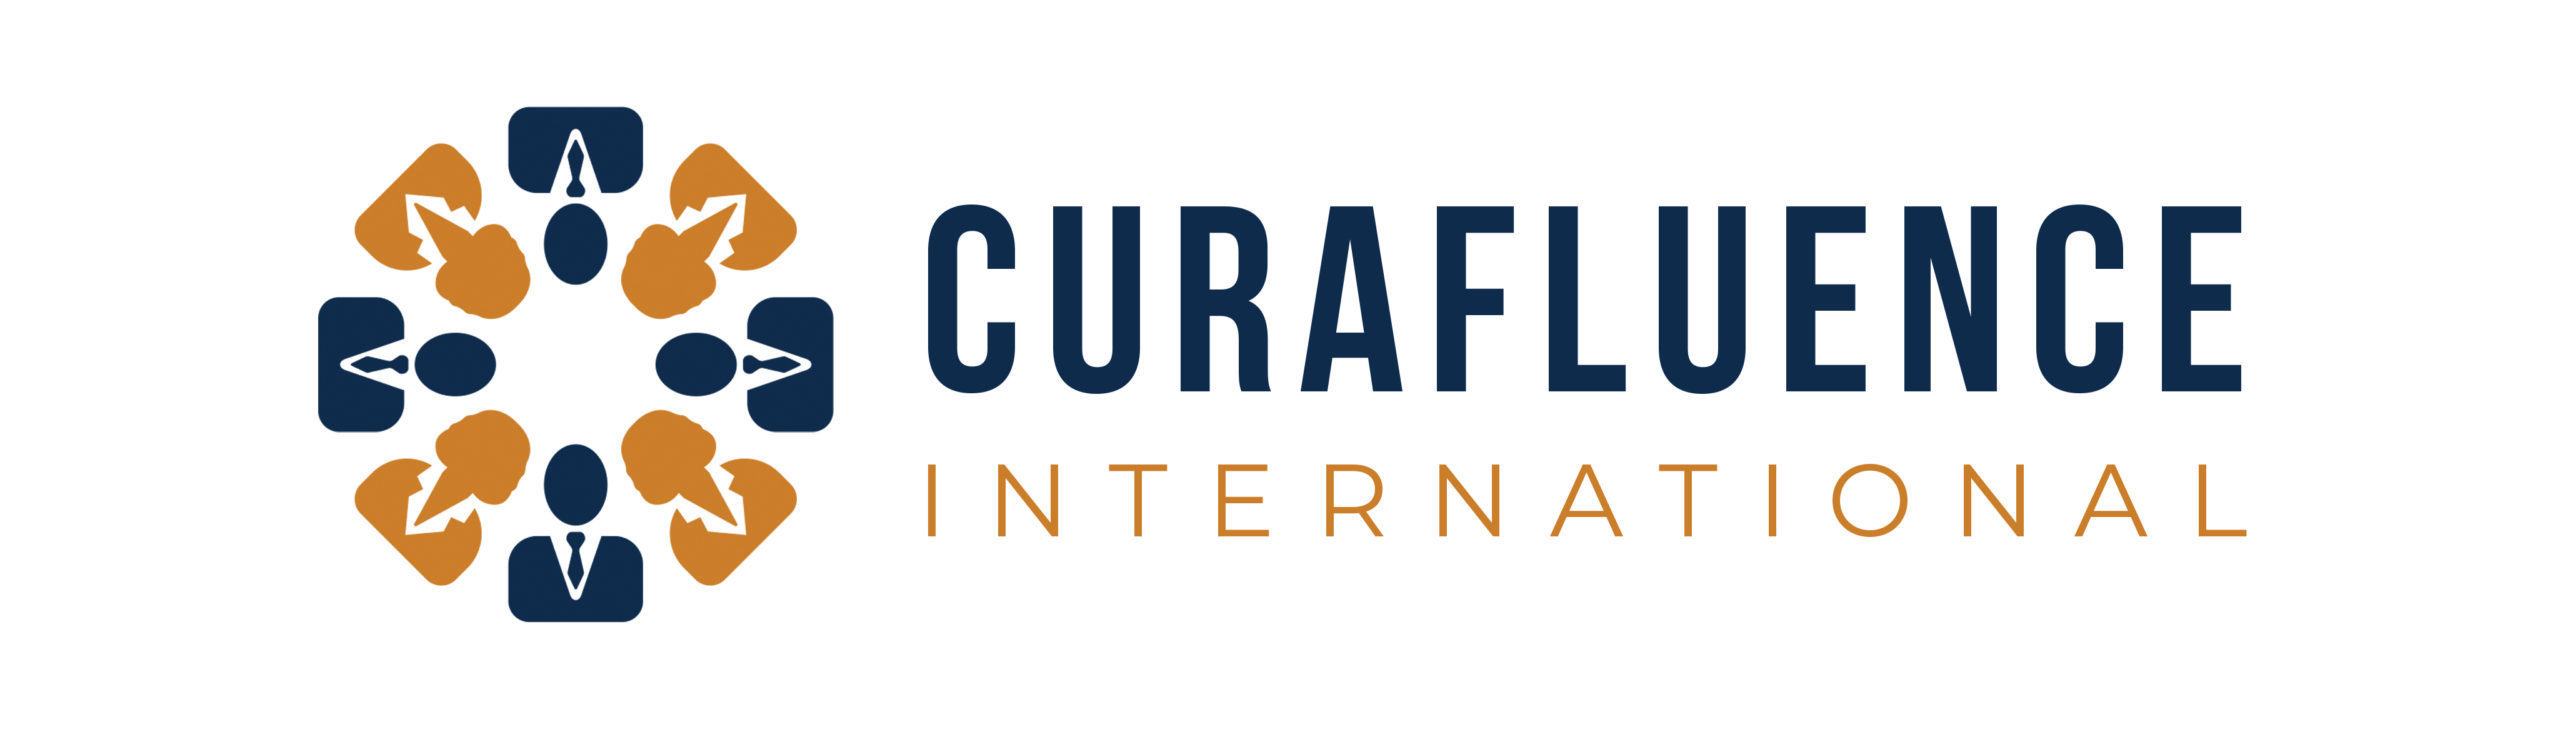 Curafluence International